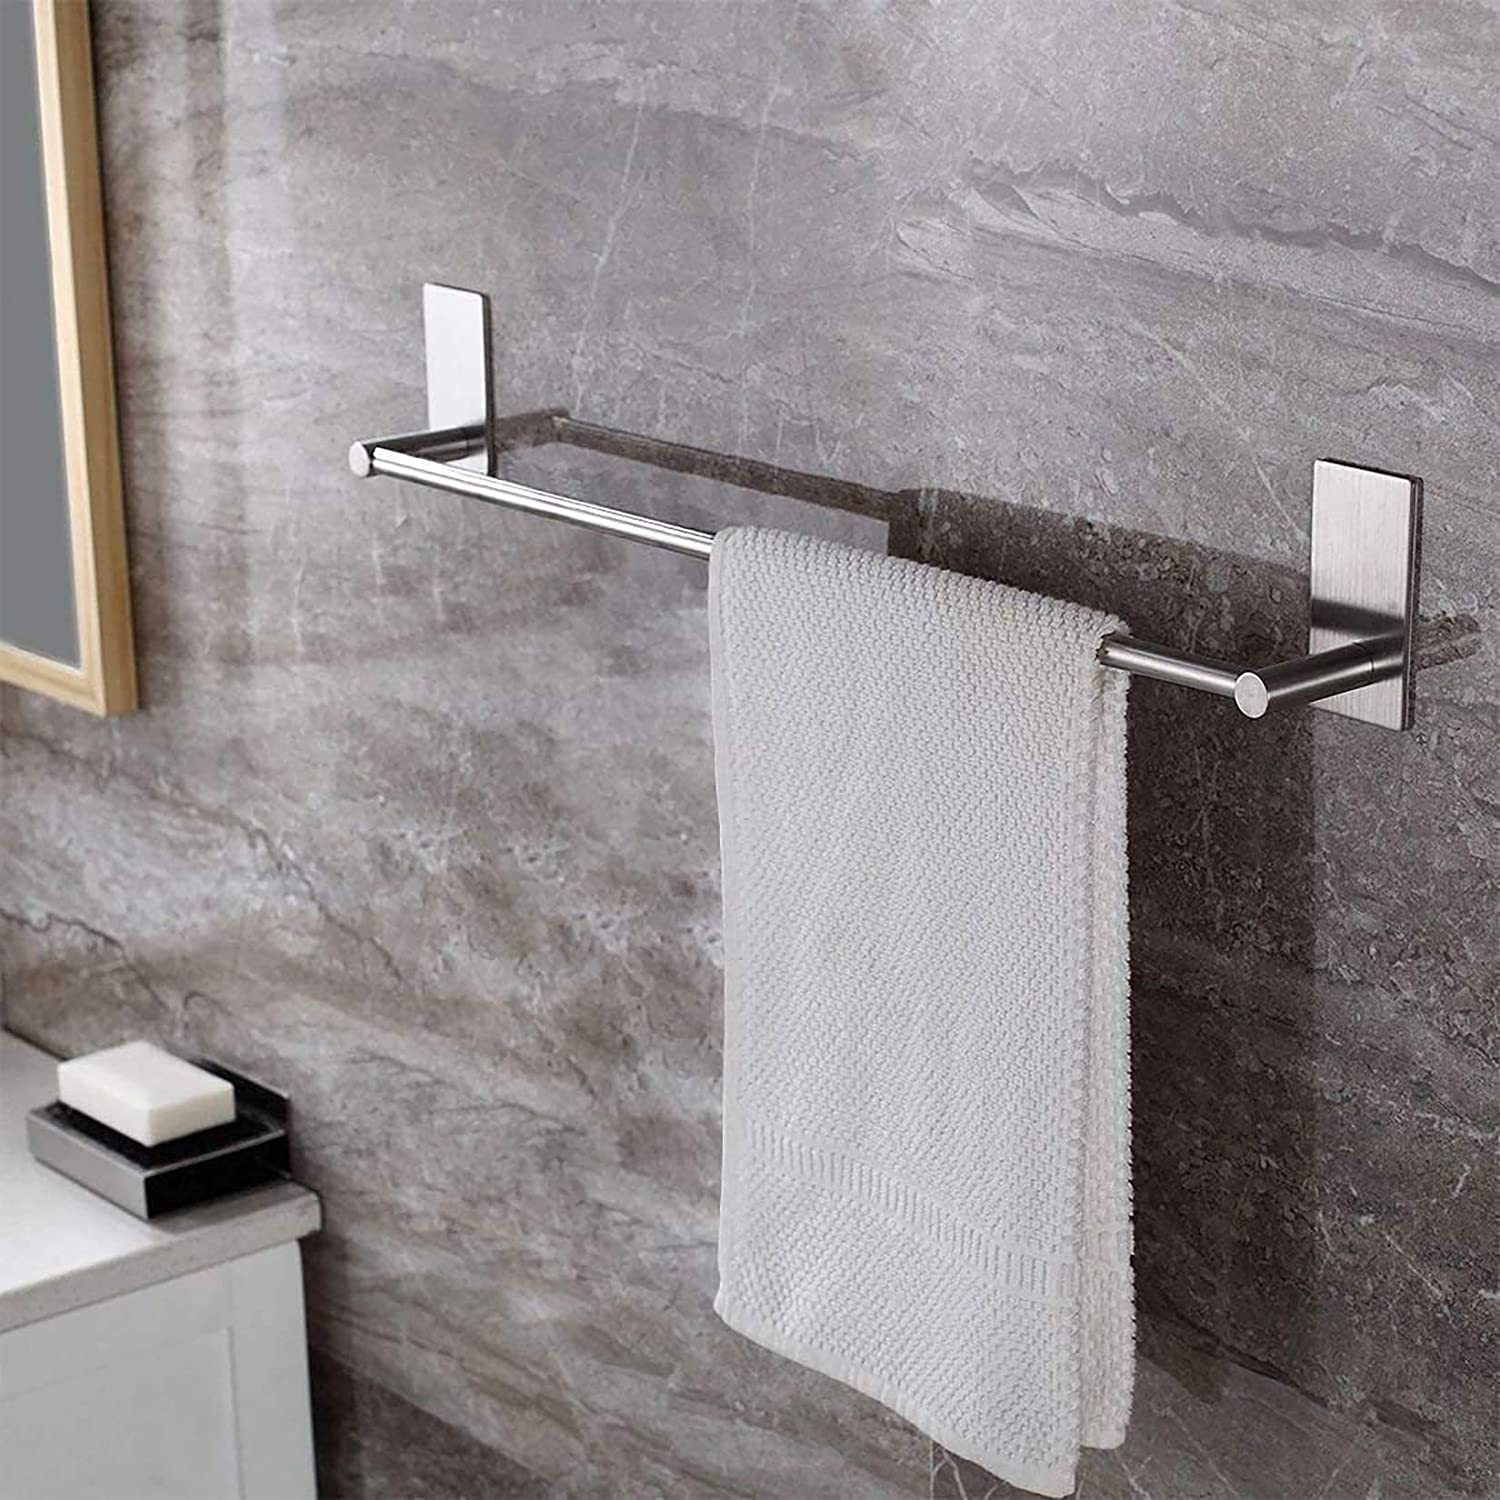 Taozun Towel Bar Self Adhesive 21 65 Inch Bathroom Brushed Sus 304 Stainless Steel Bath Wall Shelf Rack Hanging Towel Stick On Sticky Hanger Contemporary Style Kitchen Dining Amazon Com